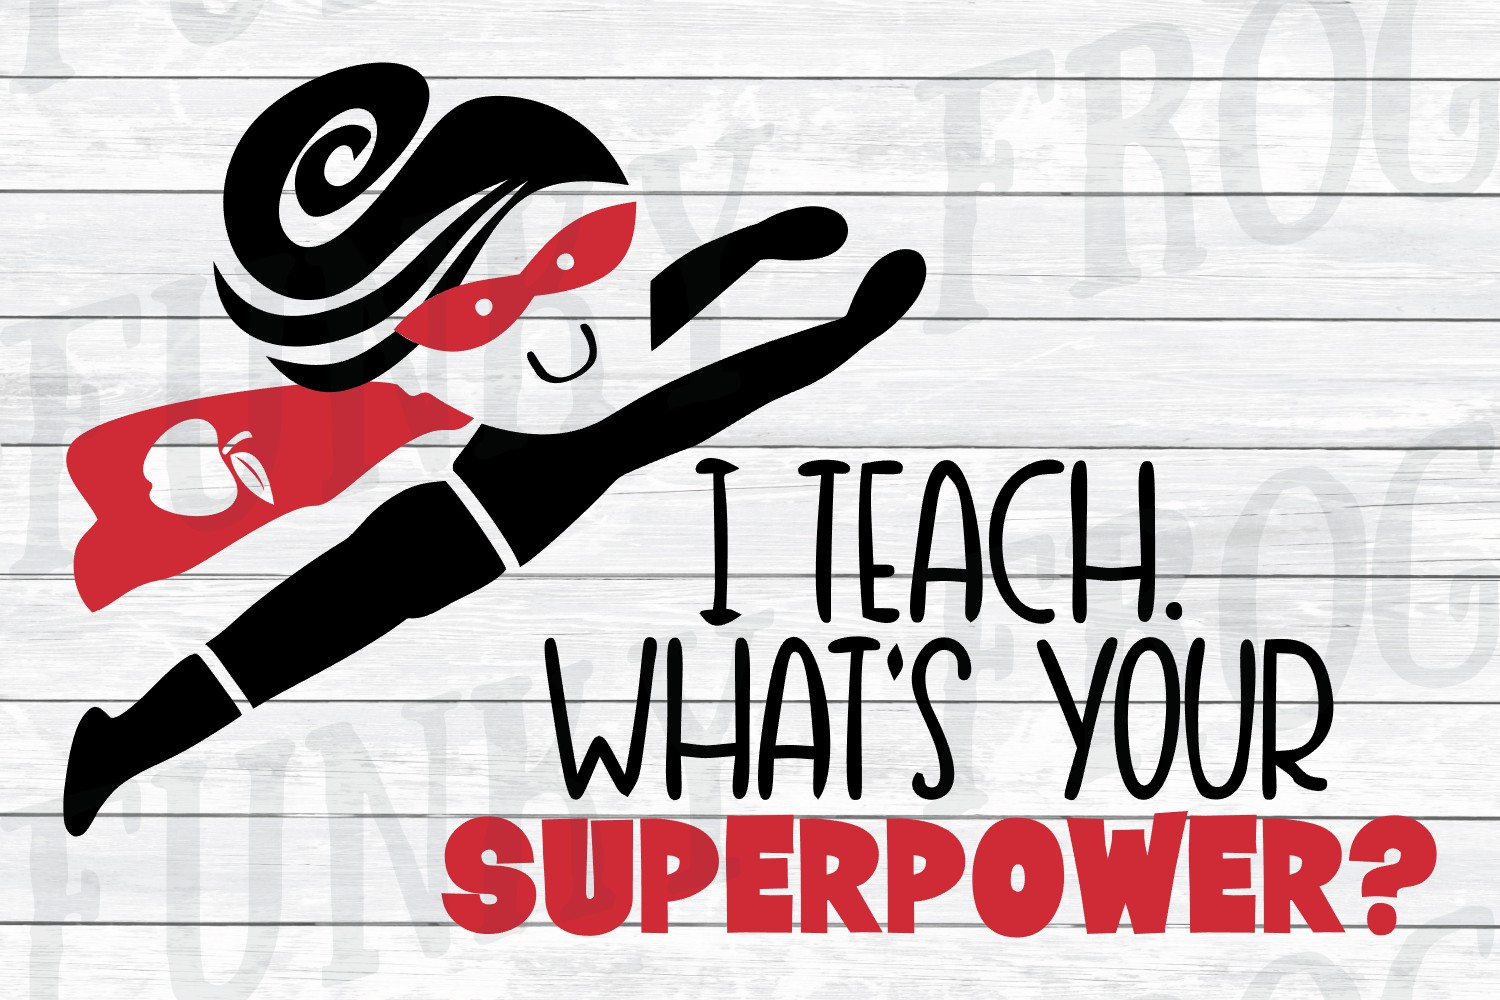 I Teach What's Your Superpower - Teacher SVG Cut File example image 3